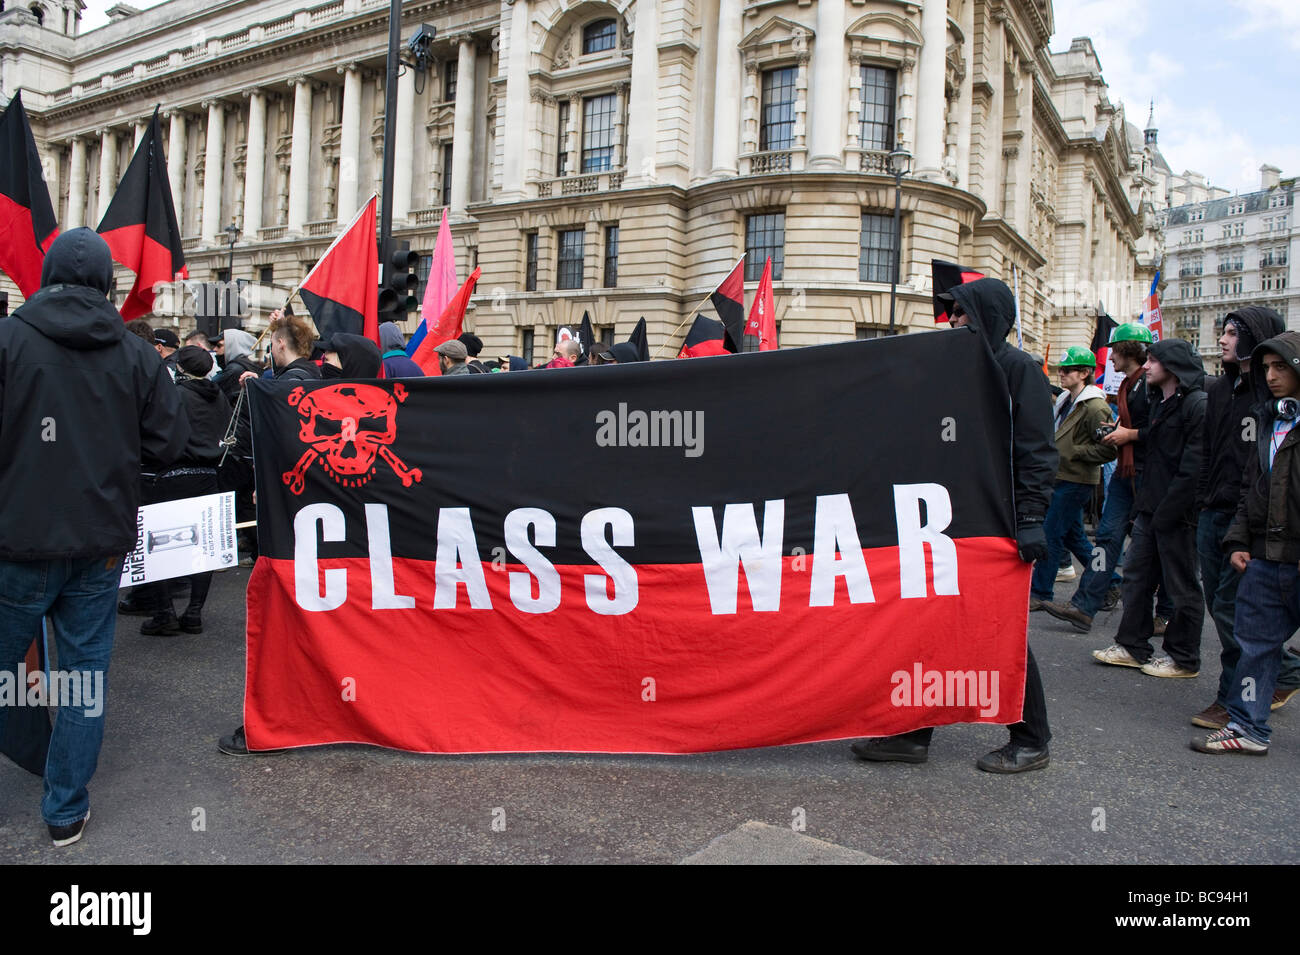 March for jobs, justice and climate ahead of the G20 summit in London, Class War  group - Stock Image